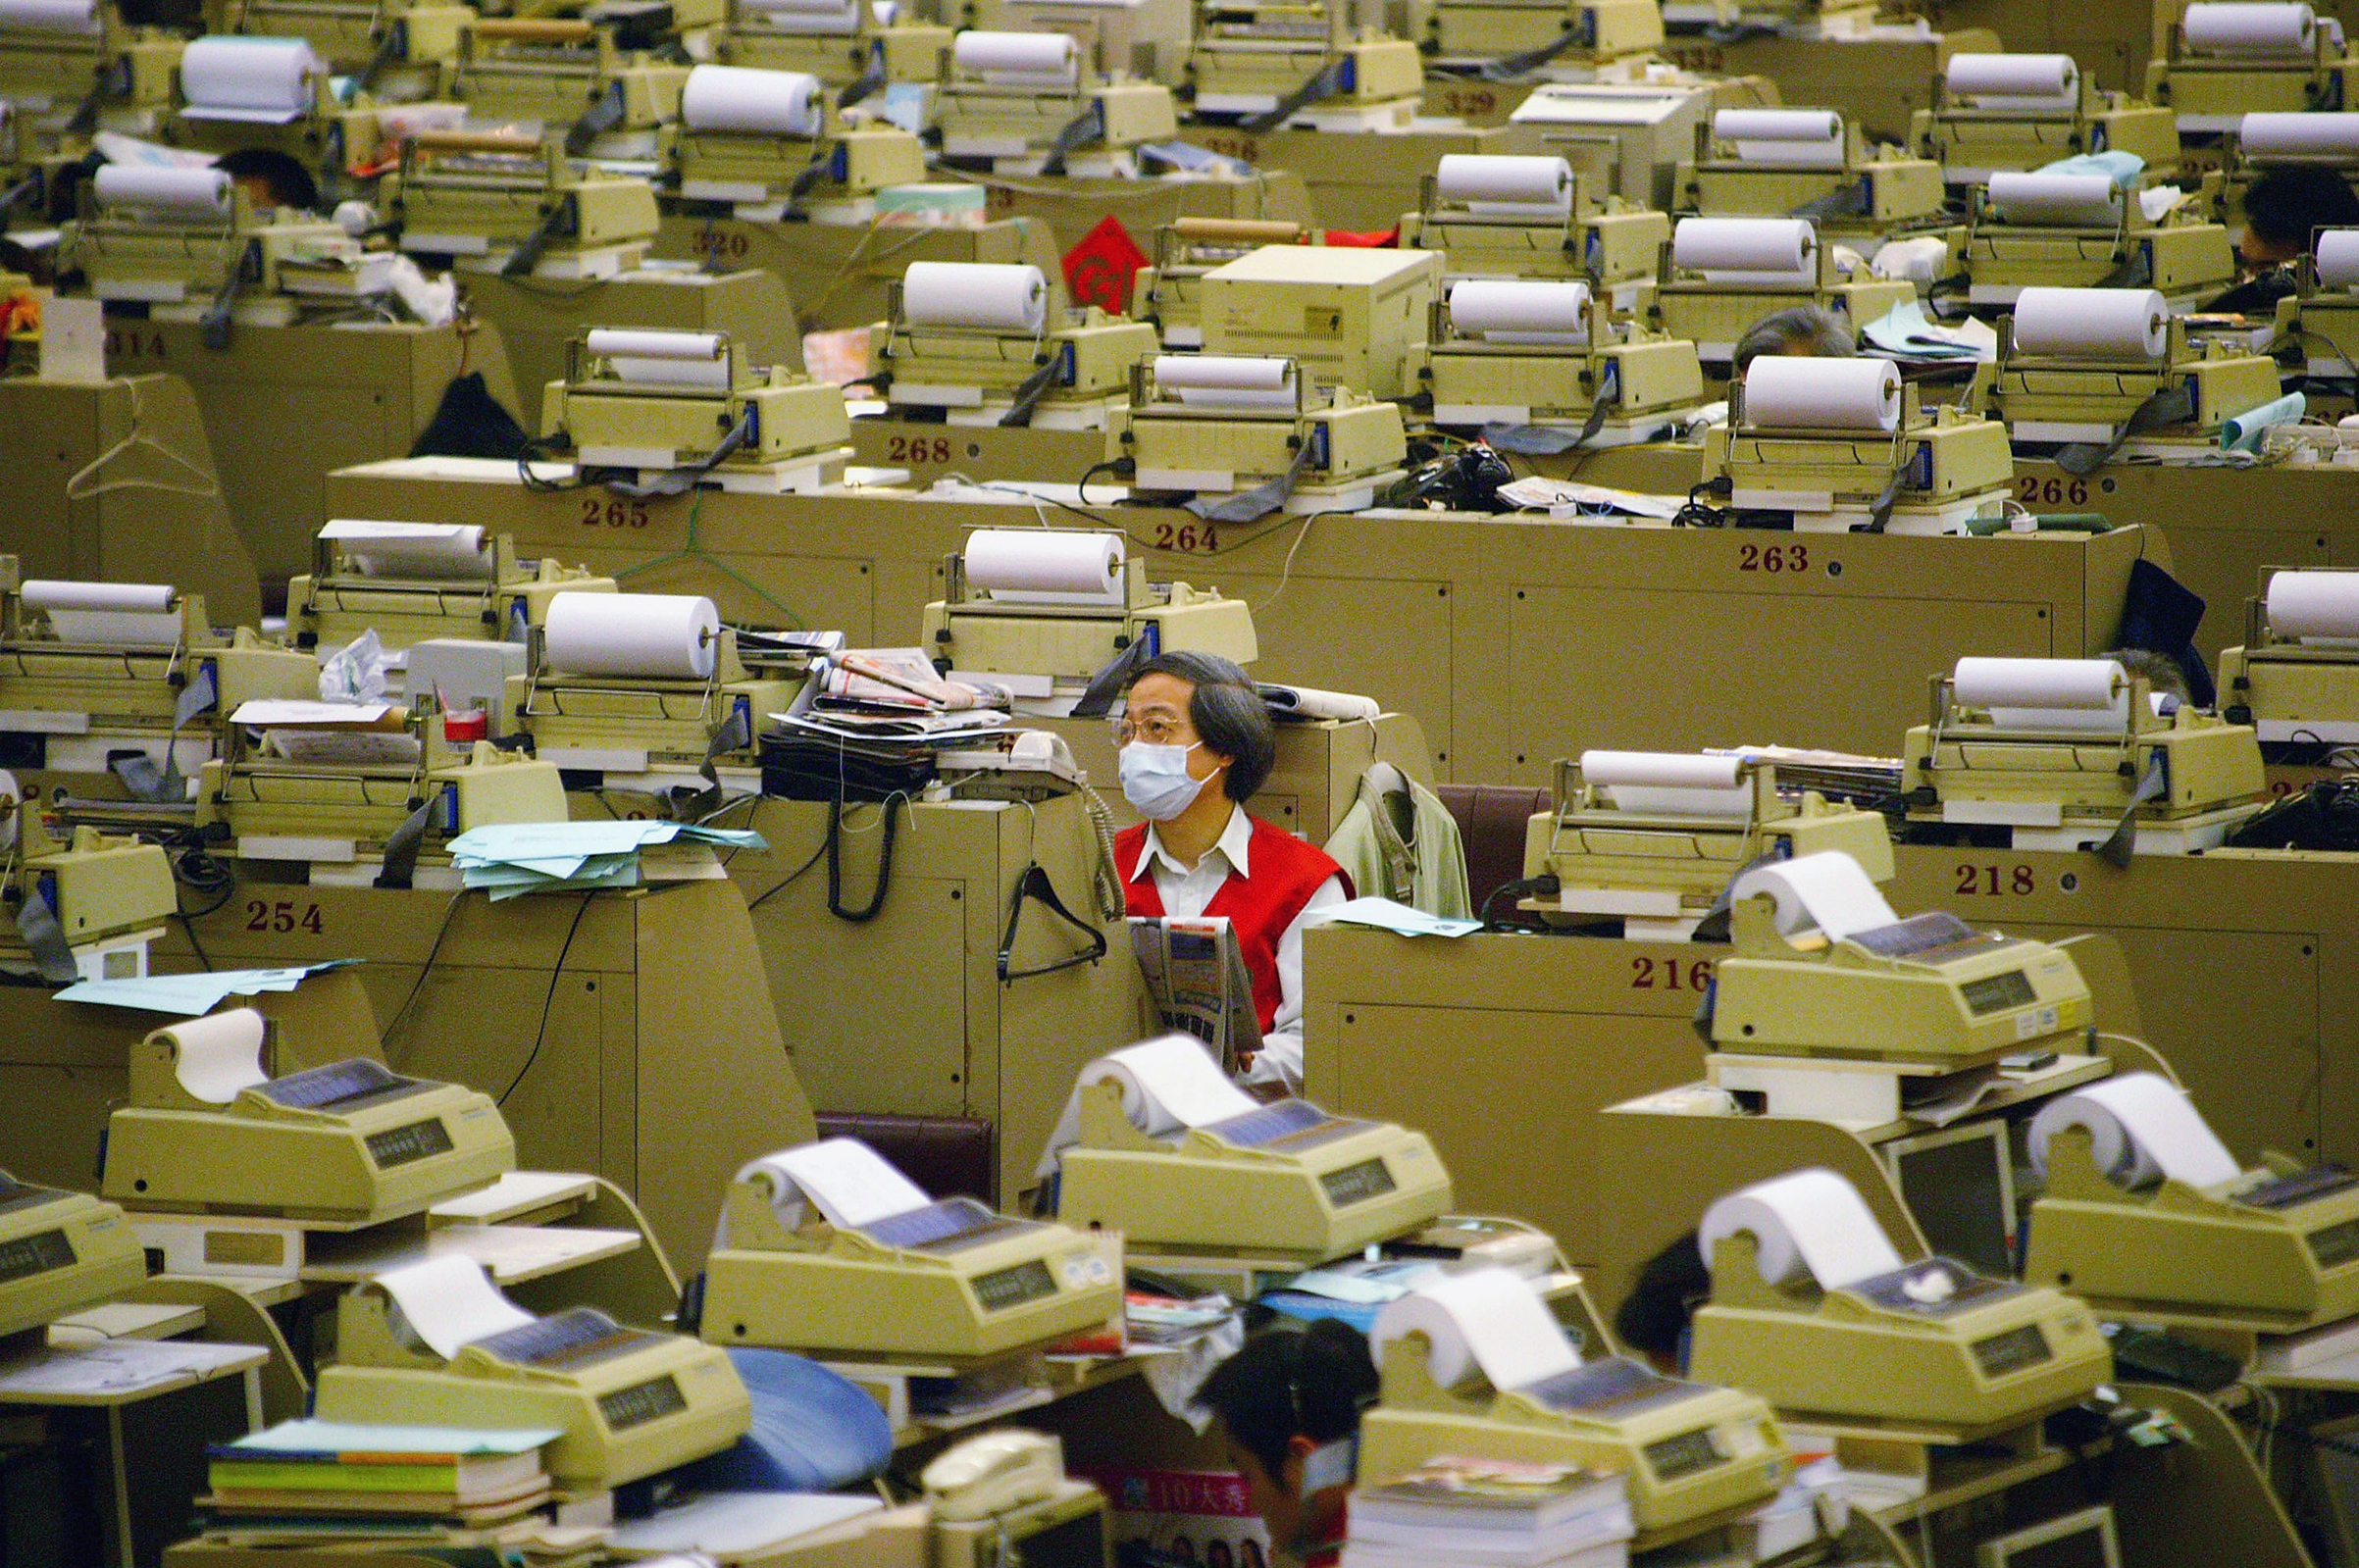 A trader on the stock exchange floor wears a protective mask against the SARS virus in Hong Kong on April 17, 2003. Some 300 people died of Severe Acute Respiratory Syndrome in Hong Kong — the highest toll in the global outbreak. For weeks, the city lived under a pall of fear. Hotels and restaurants were deserted, and masks and disinfectant became commonplace, as the population struggled to contain the outbreak.